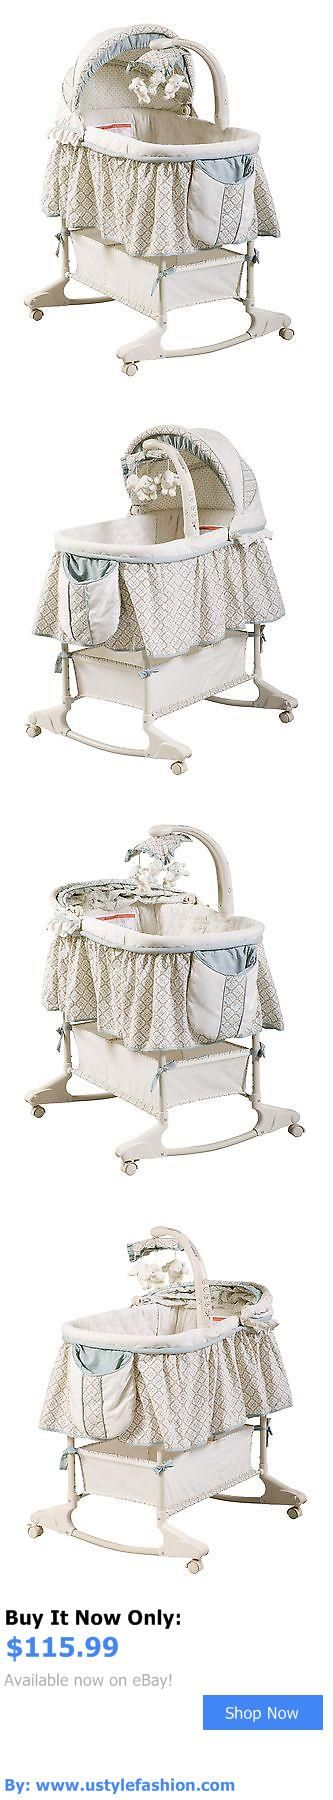 Bassinets And Cradles: Delta Children Rocking Bassinet Clayton Pack Of 1 BUY IT NOW ONLY: $115.99 #ustylefashionBassinetsAndCradles OR #ustylefashion